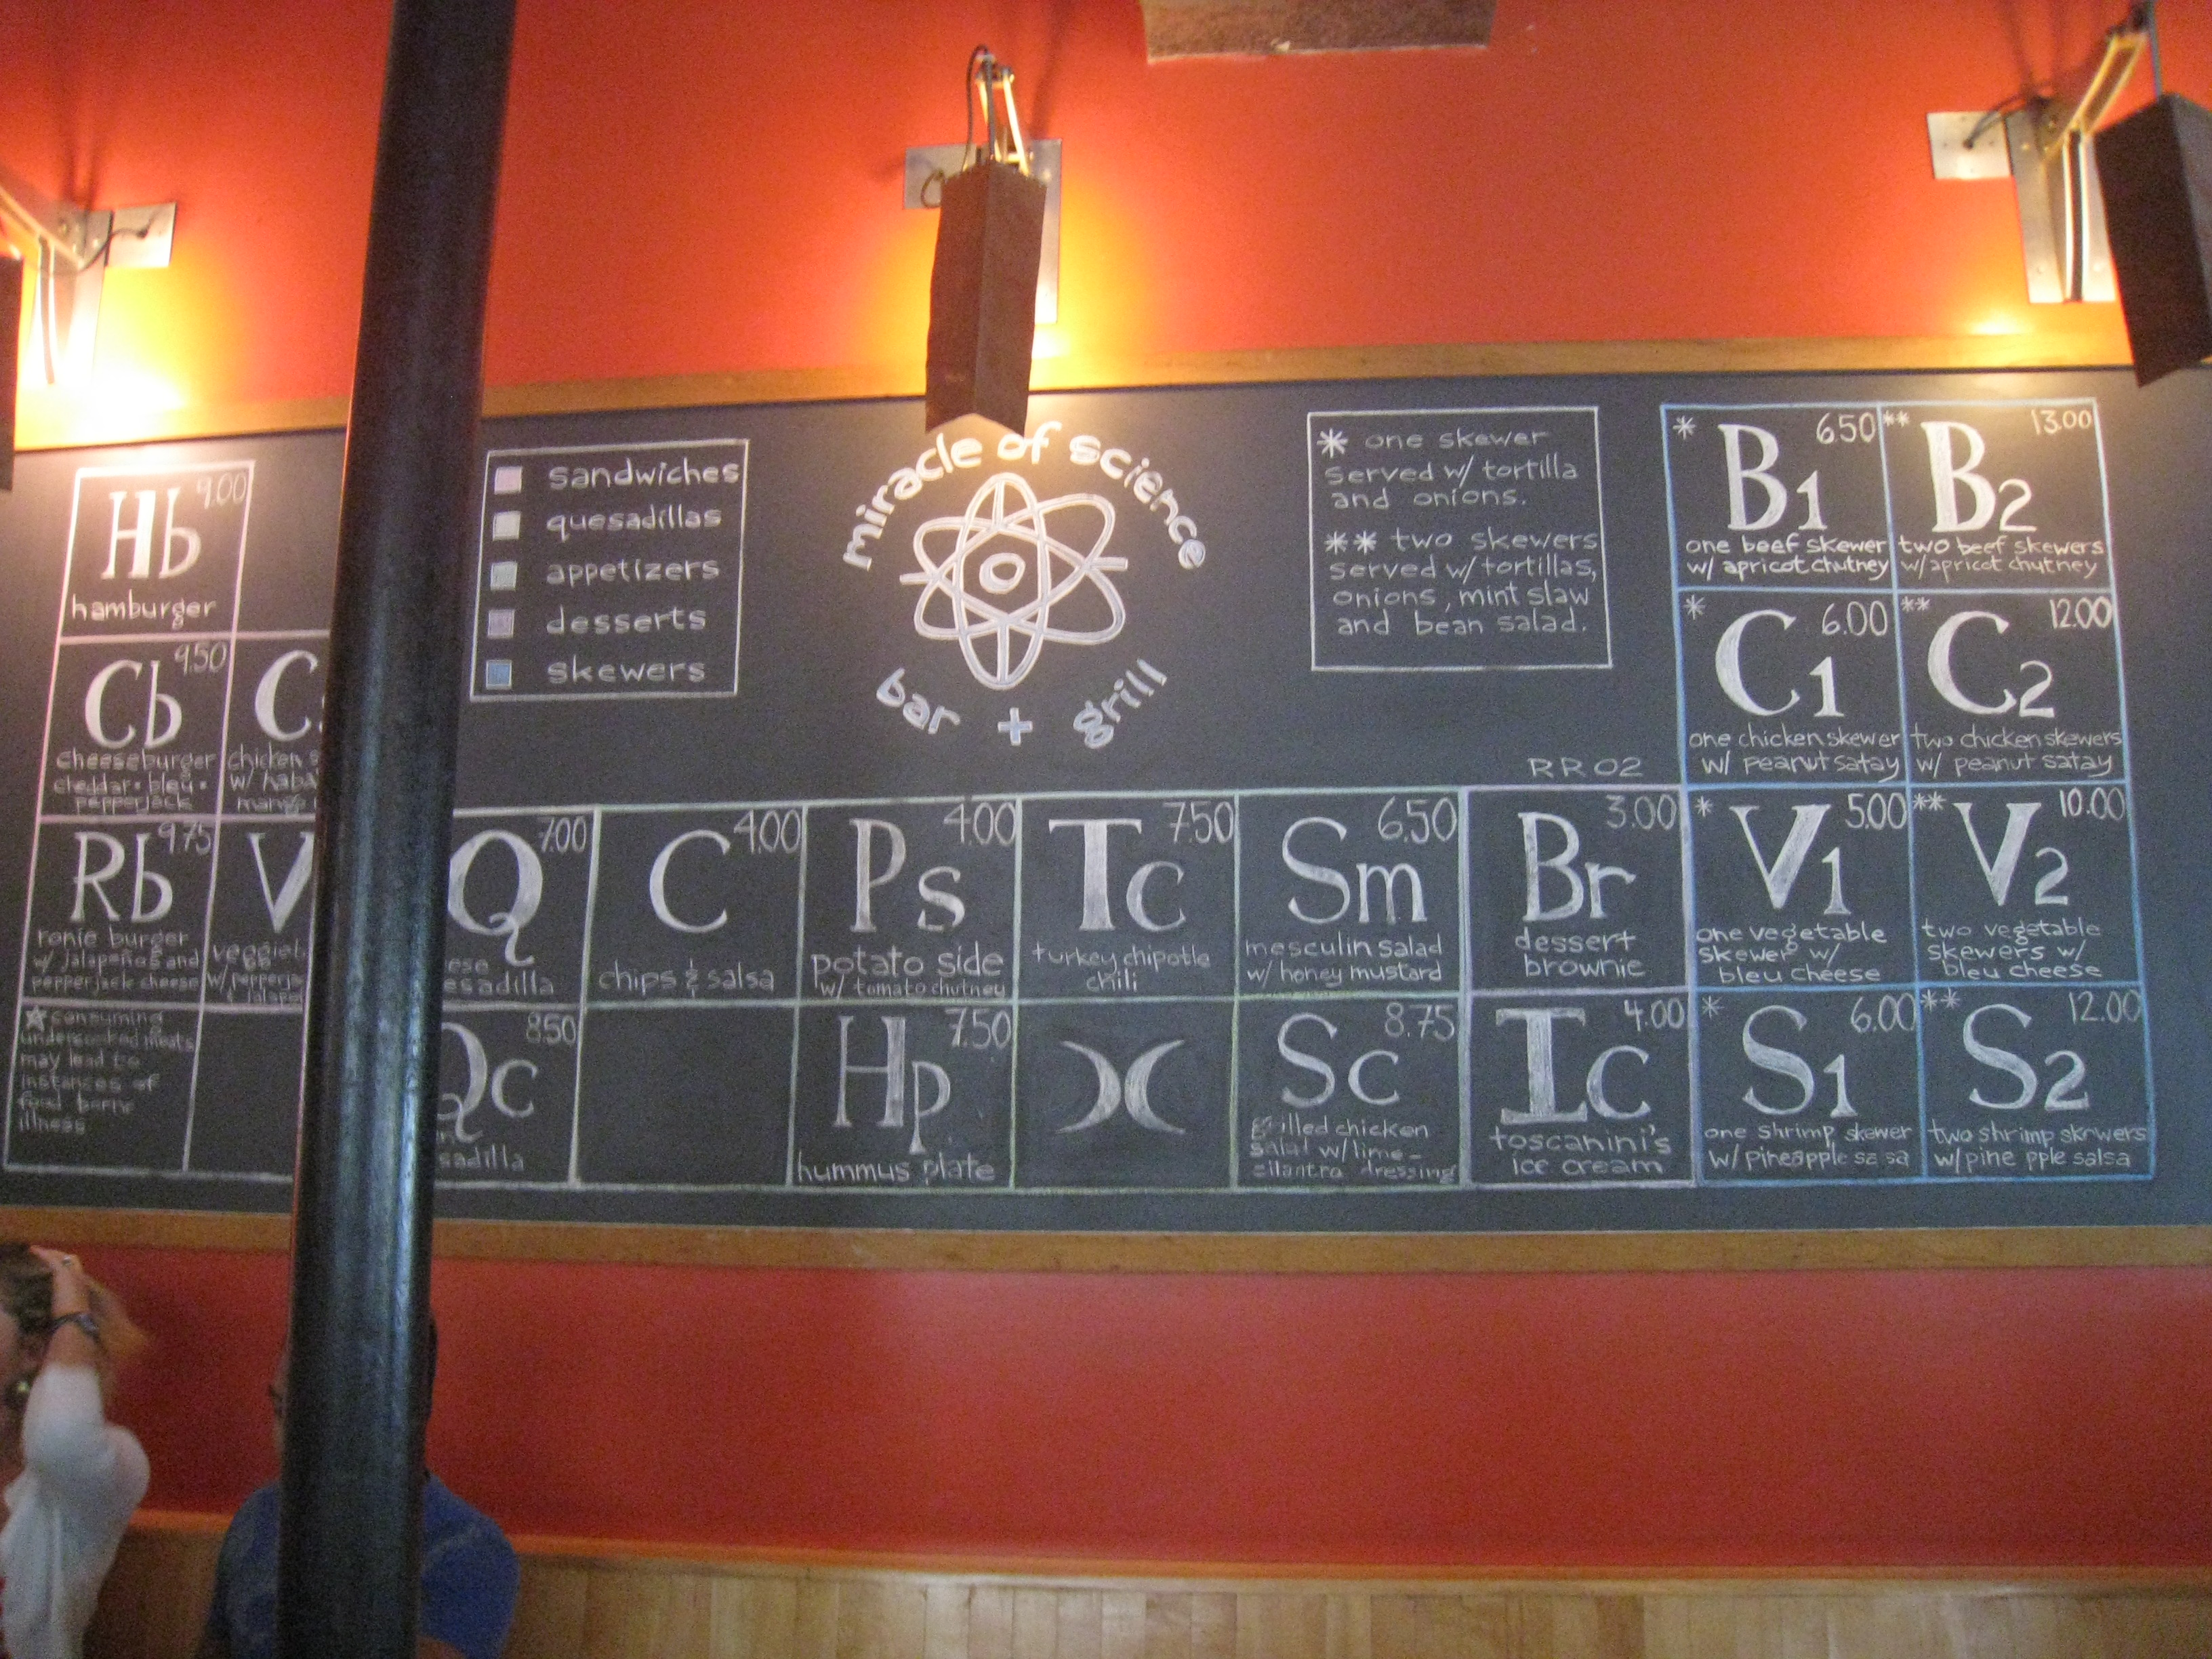 http://questier.com/Photos/200907_USA/20090731-172957_USA_Massachusetts_MIT_Miracle_of_science_bar.jpg